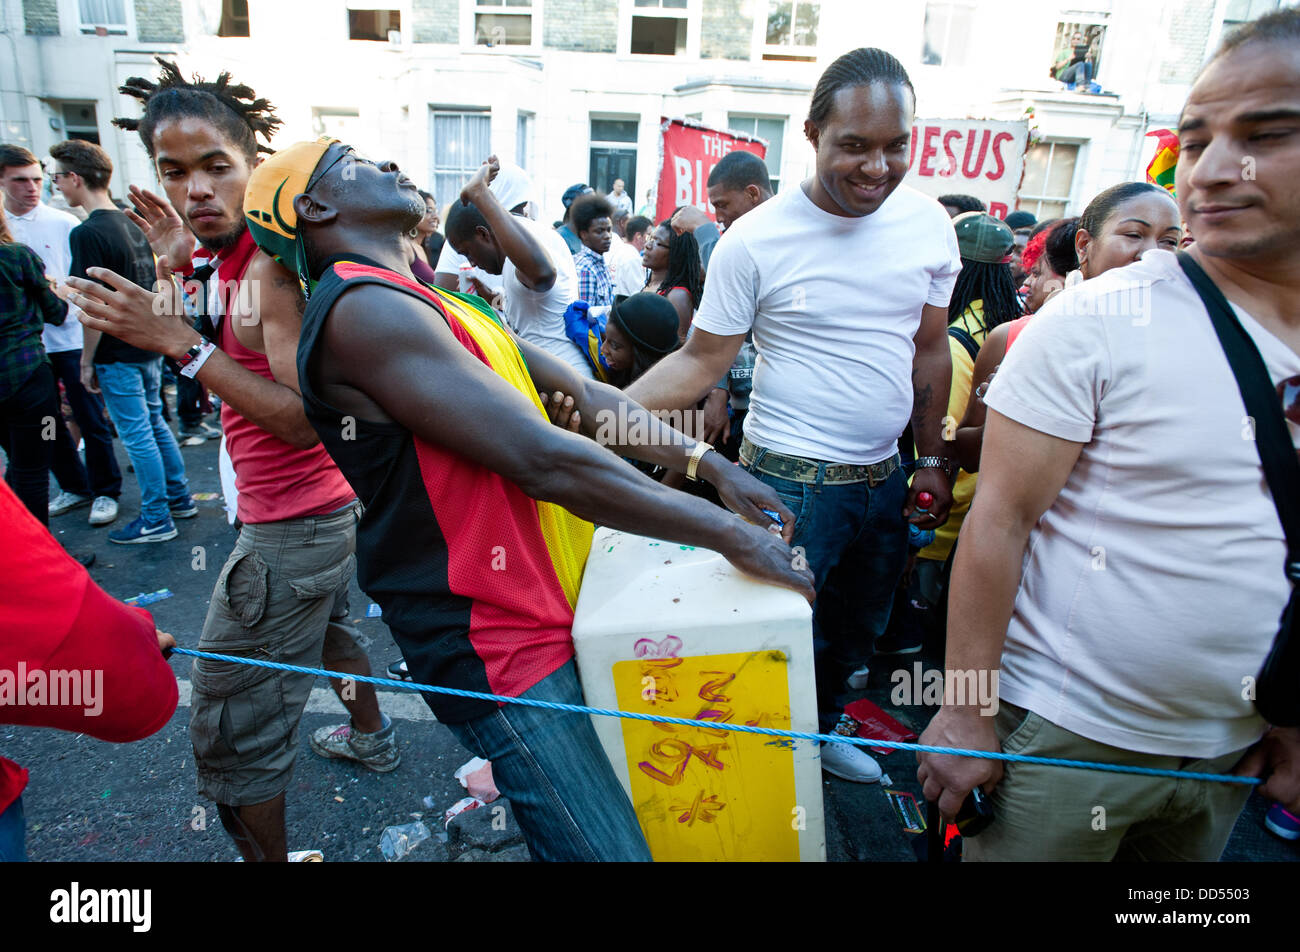 London, UK - 26 August 2013: a man dances with a traffic divider during the  annual parade at the Notting Hill Carnival. - Stock Image